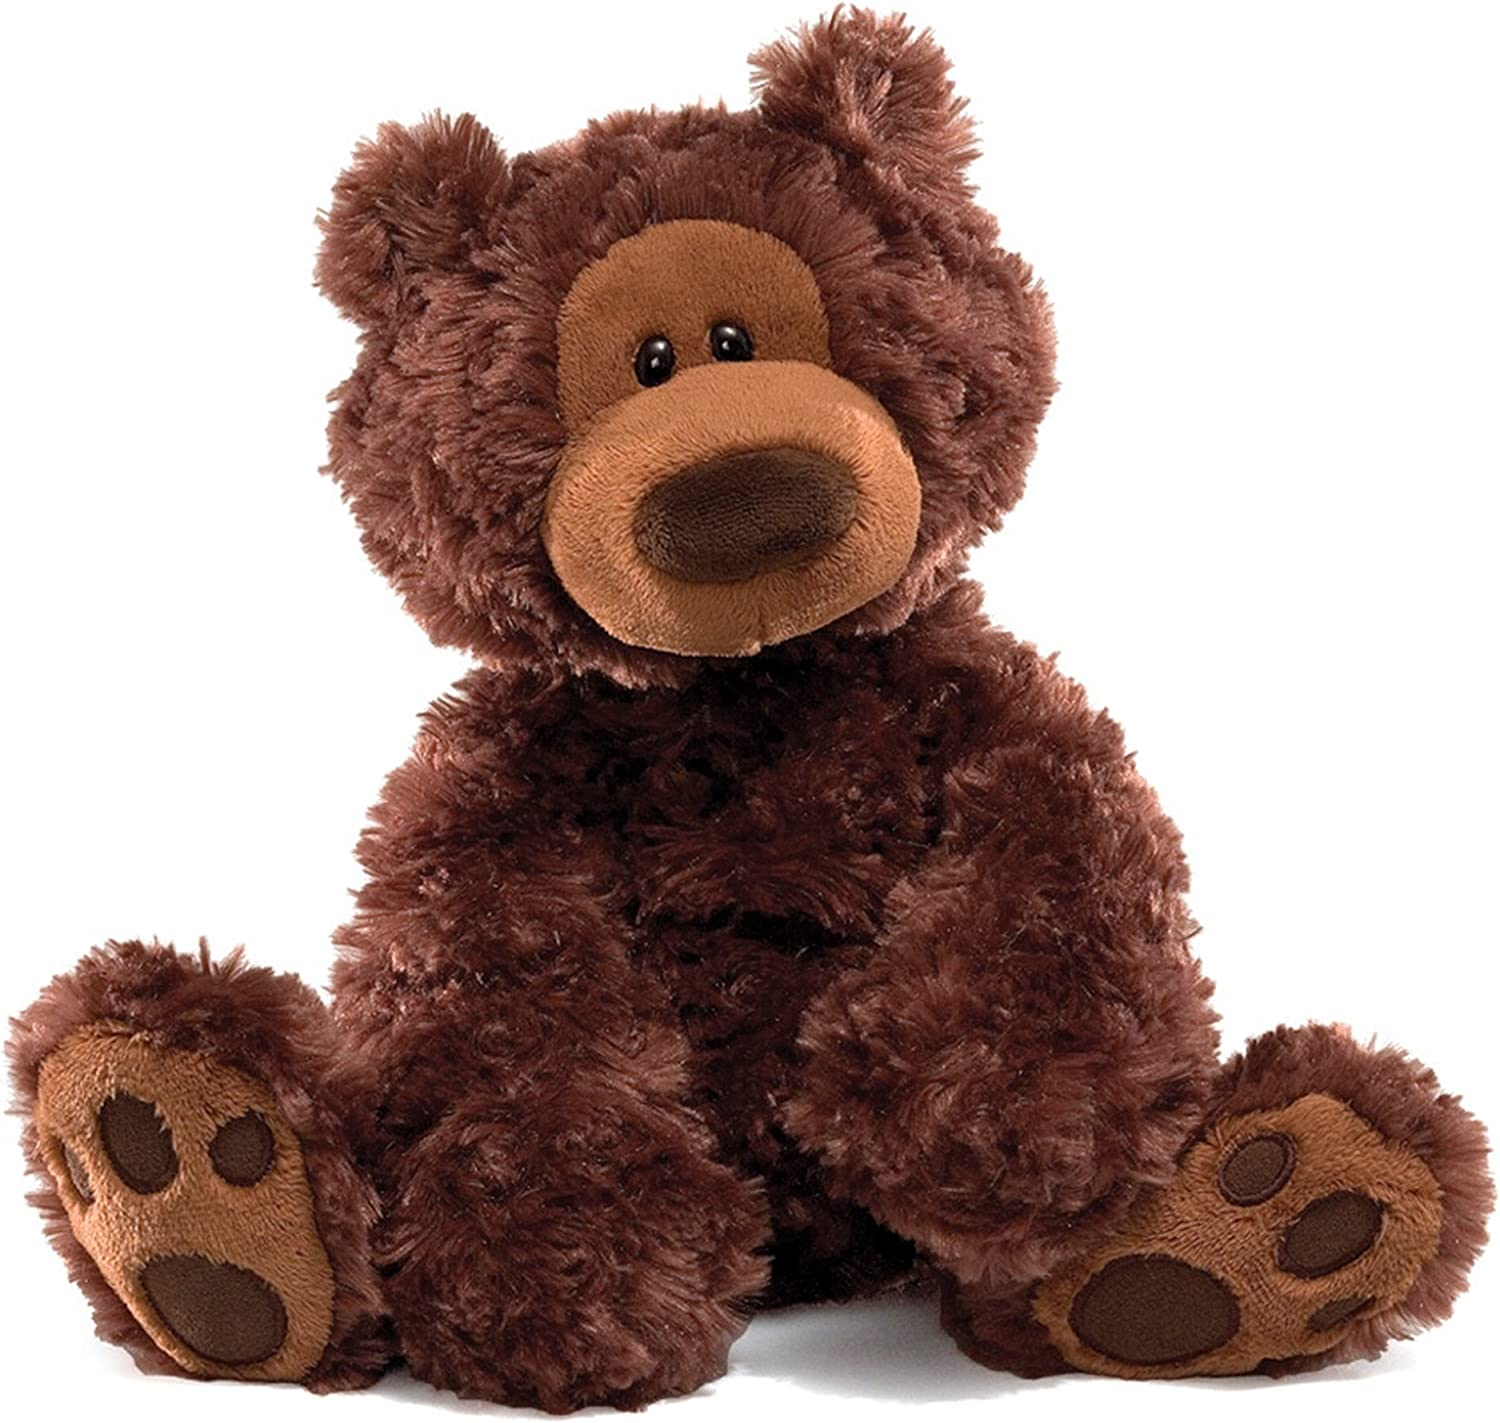 Top 15 Best Cute Stuffed Animals (2020 Reviews & Buying Guide) 6